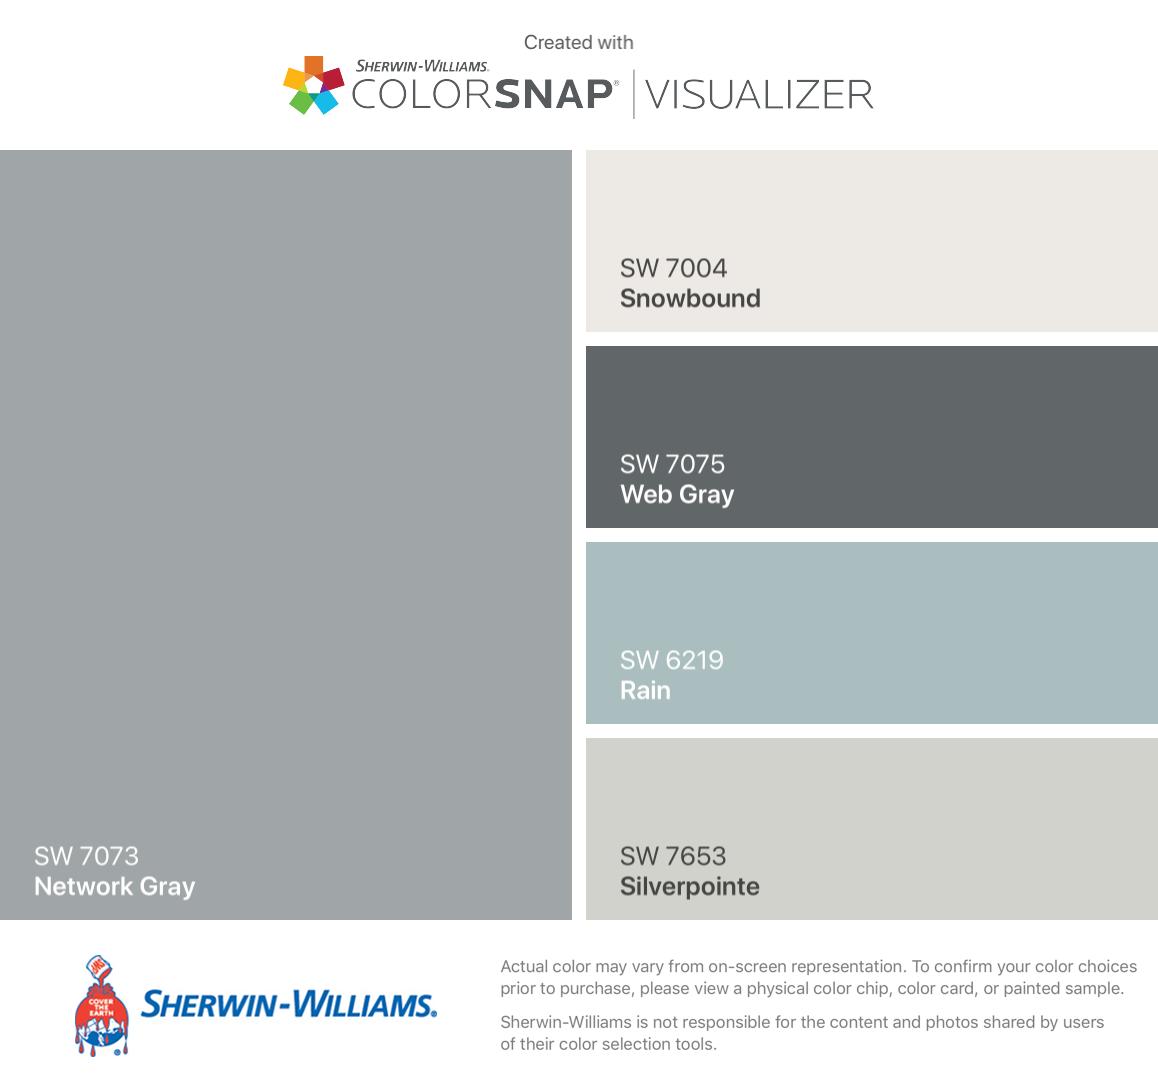 Good Exterior Palette Sherwin Williams Network Gray Sw 7073